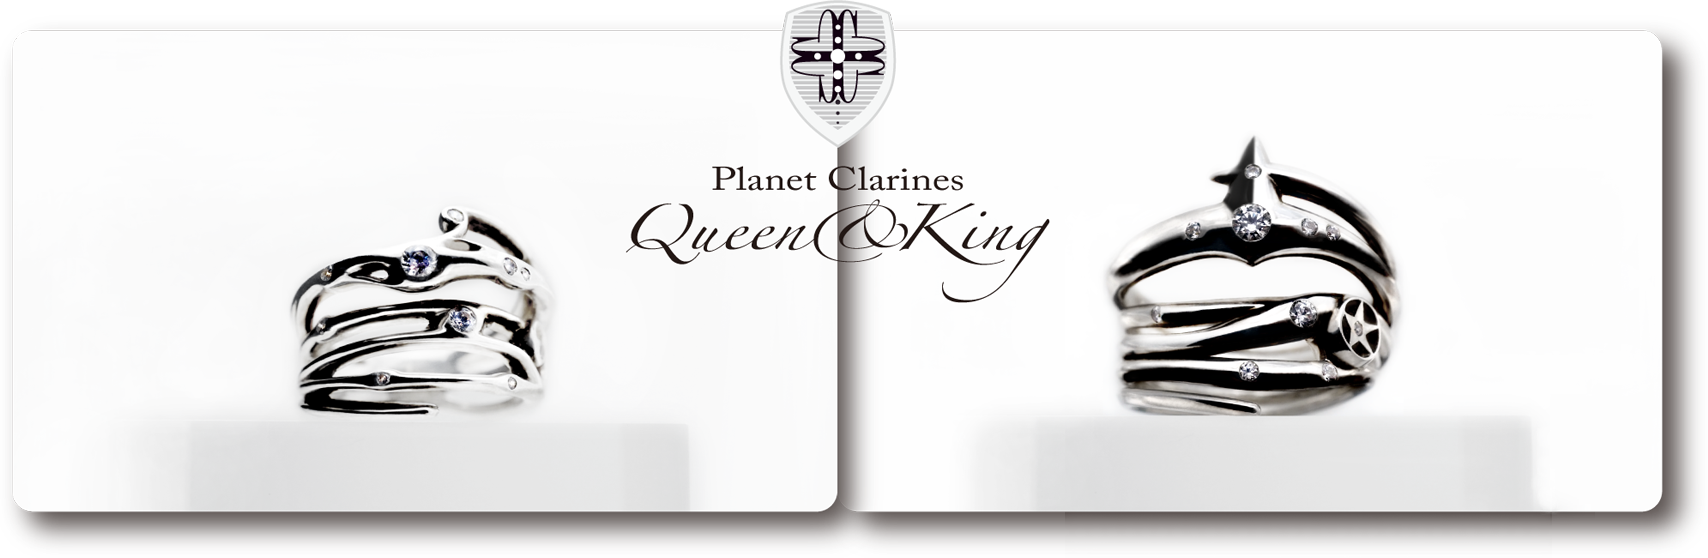 Planet Clarines Queen&King